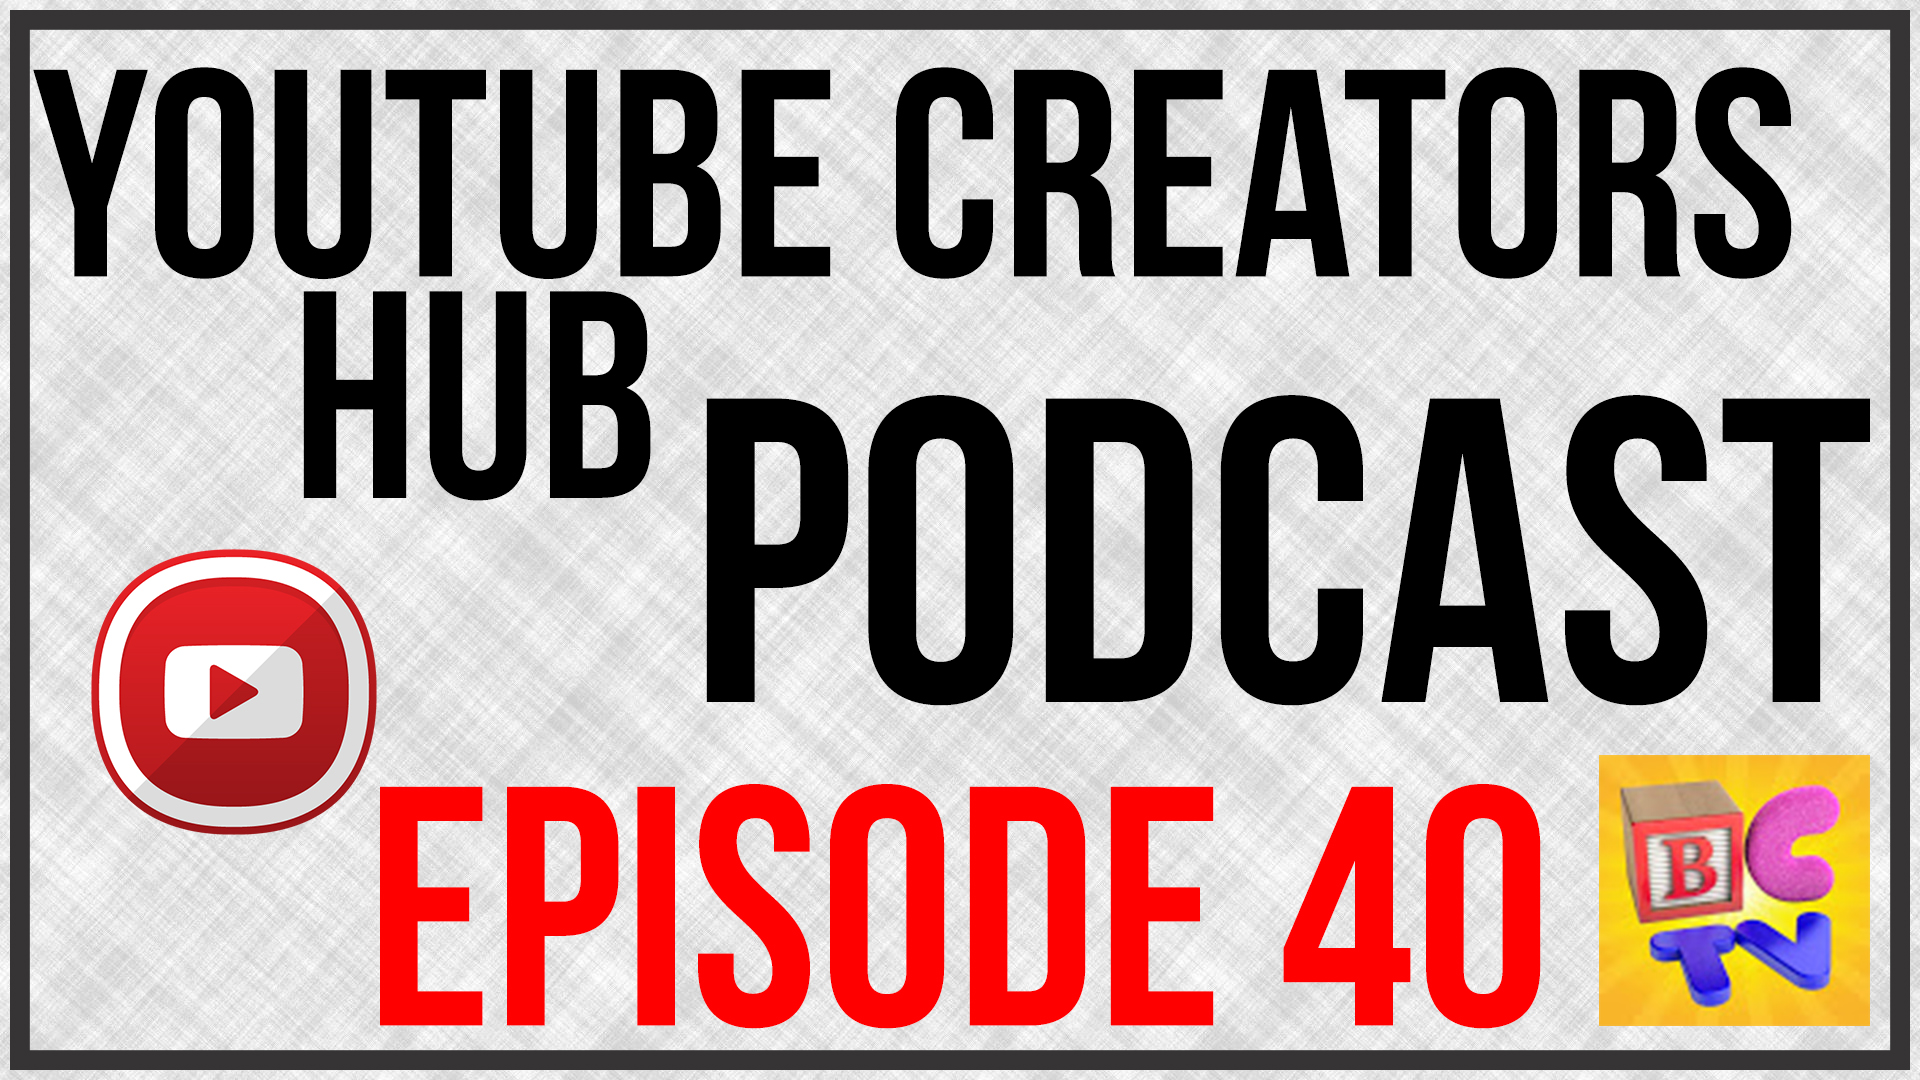 youtube creators hub podcast episode 40